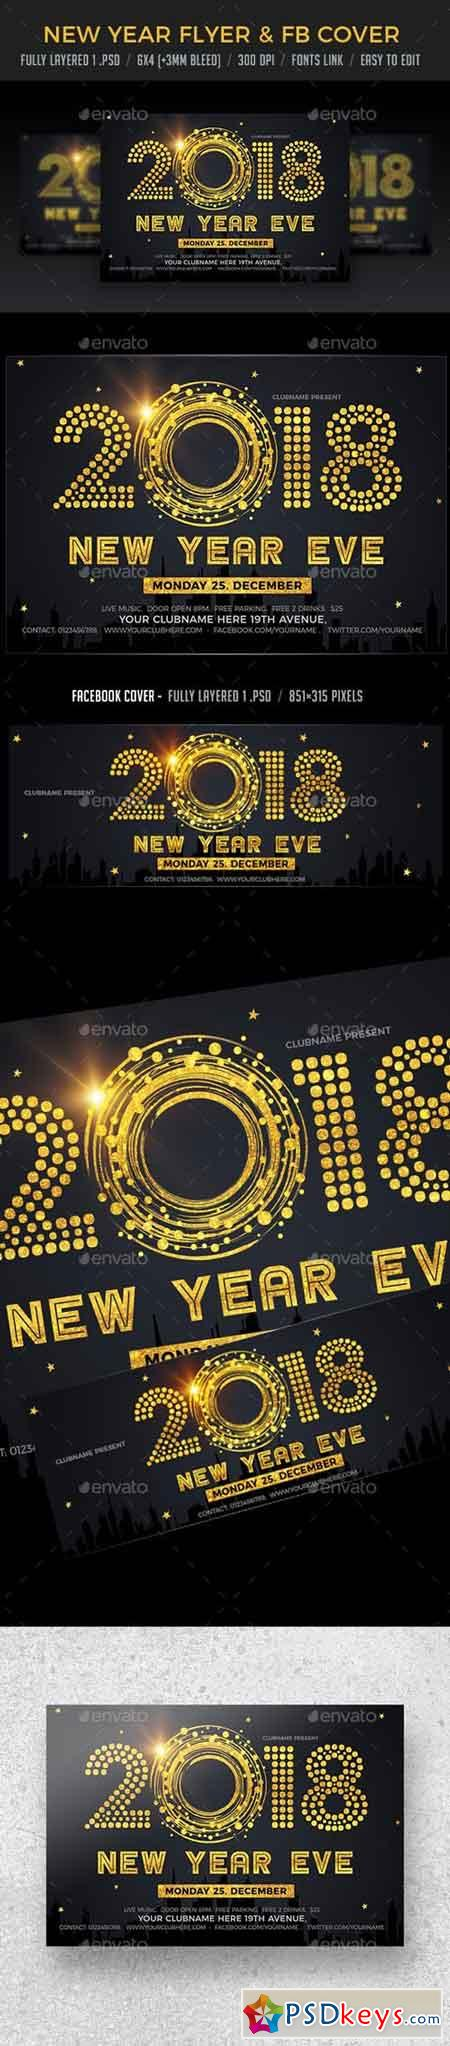 New Year Eve Flyer & FB Cover 21045247